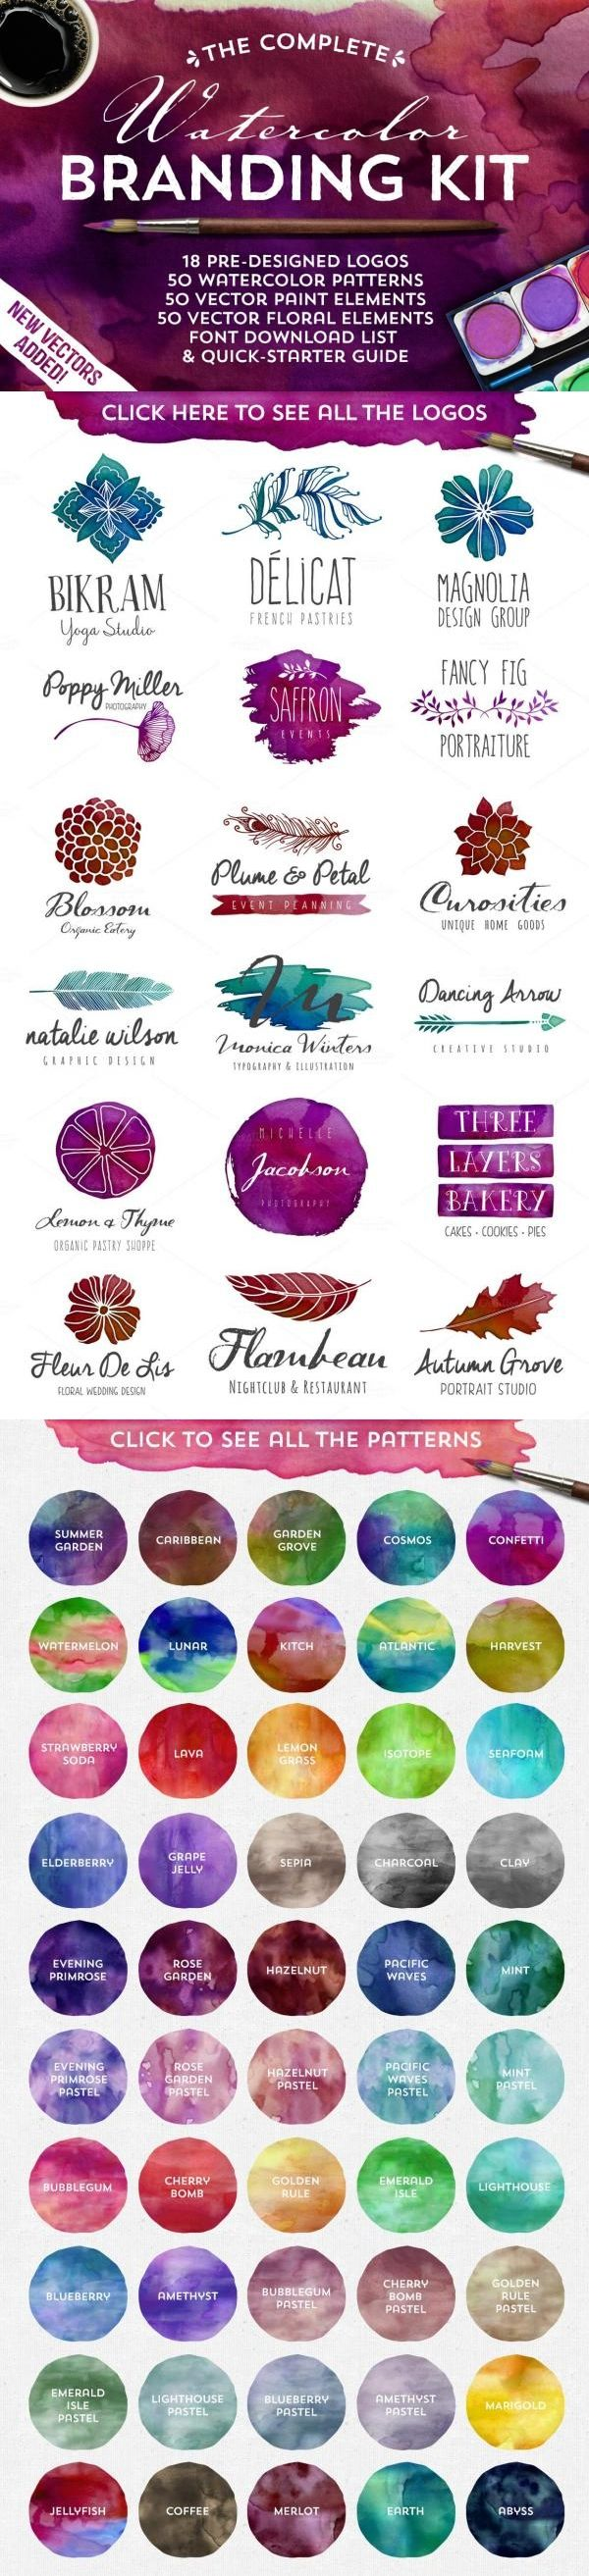 Introducing the Complete Watercolor Branding Kit! It has everything you need to design a totally awesome, vector watercolor logo. Discover all the amazing design goods 97% off only on Creative Market. (Ends 3/17)